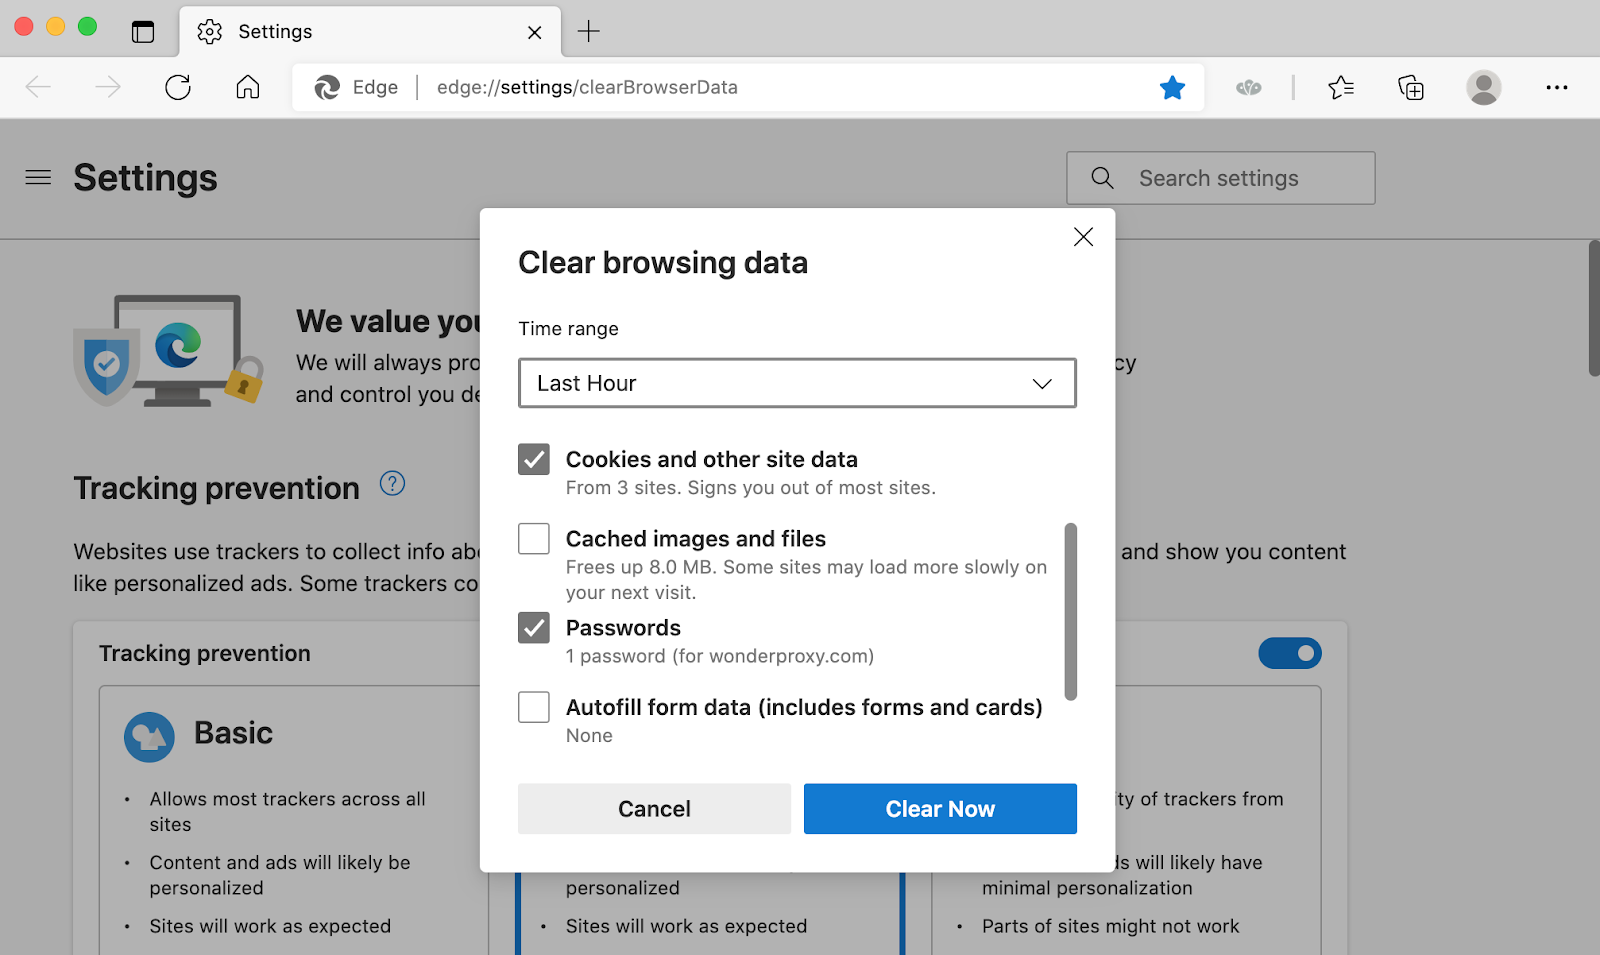 Edge's Clear Browsing Data modal with Cookies and Passwords checkboxes selected